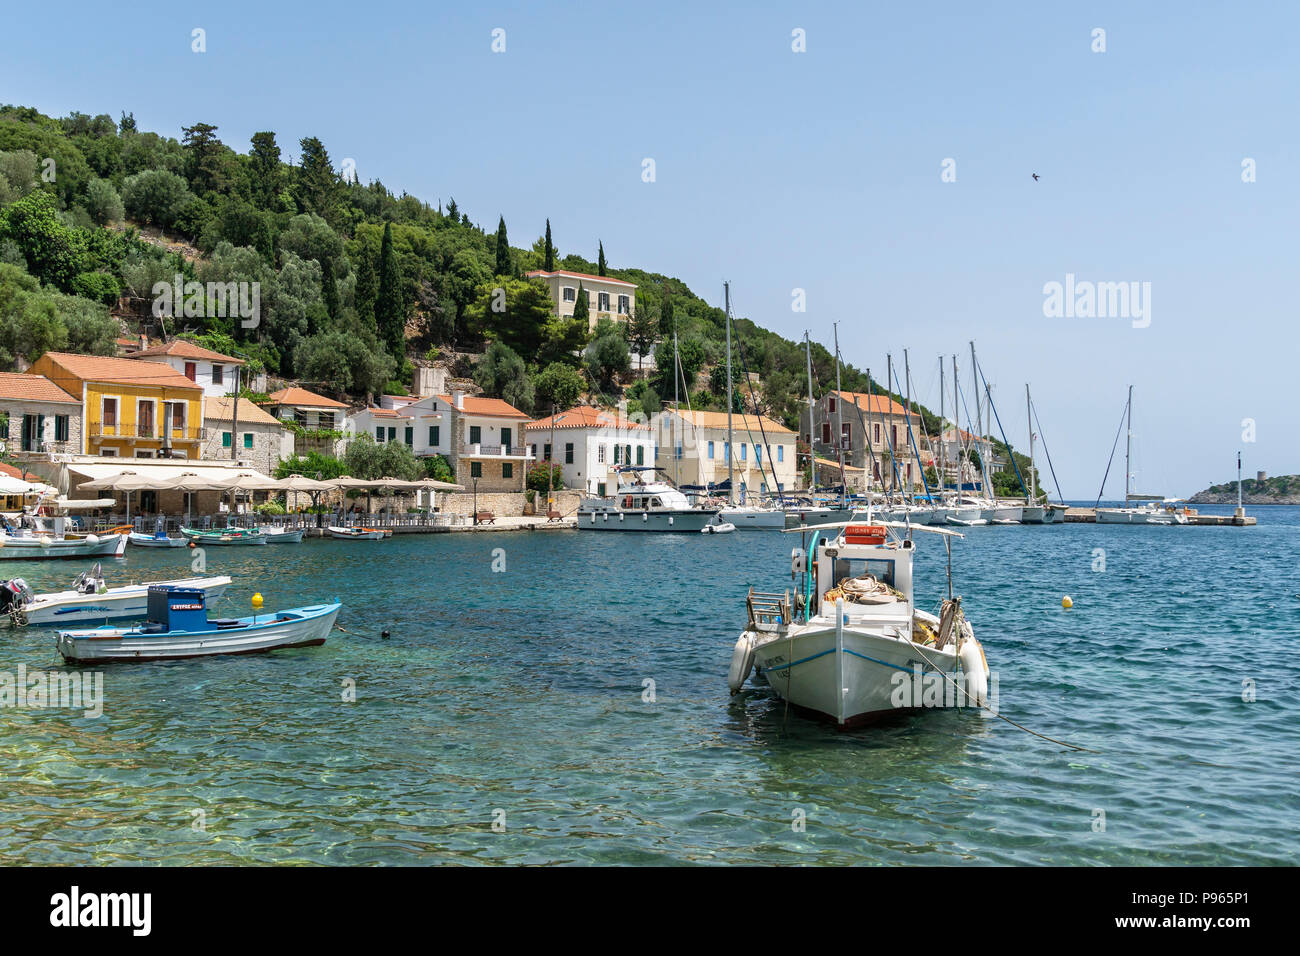 Fishing boats in the harbour at the village of Kioni on the north eastern side of the island of Ithaca, Ionian Sea, Greece - Stock Image